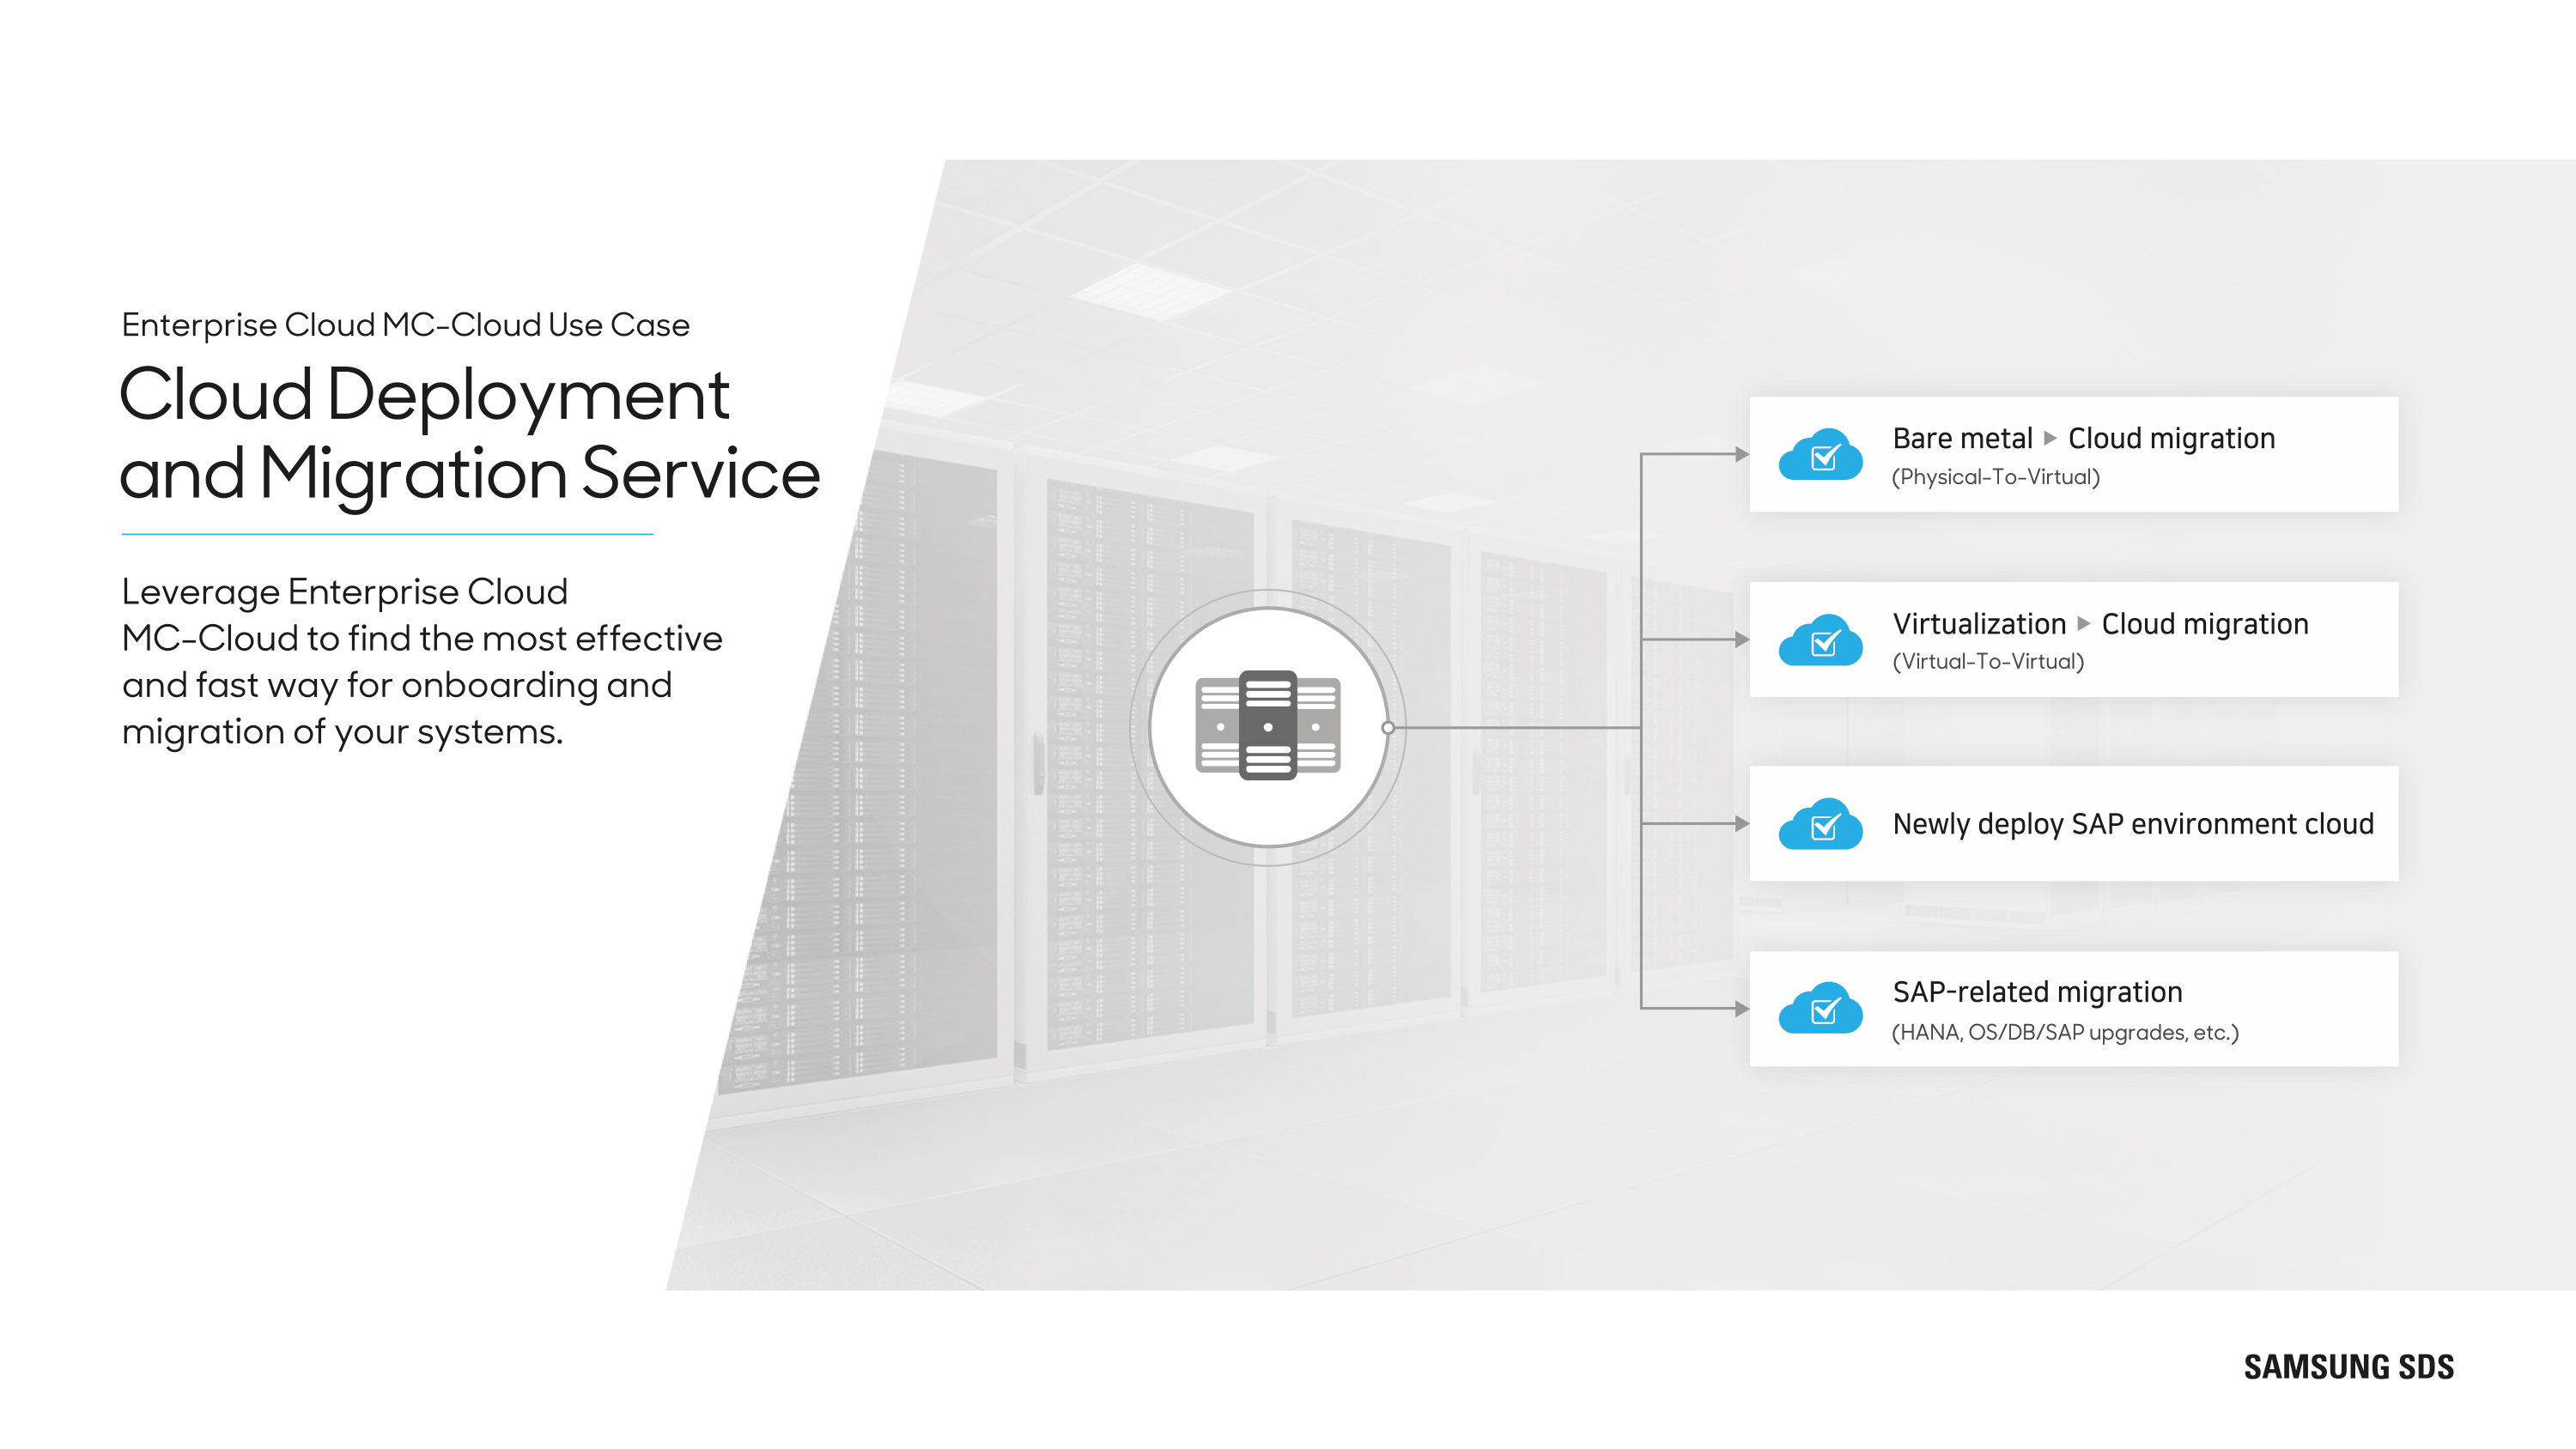 Cloud Deployment and Migration Service